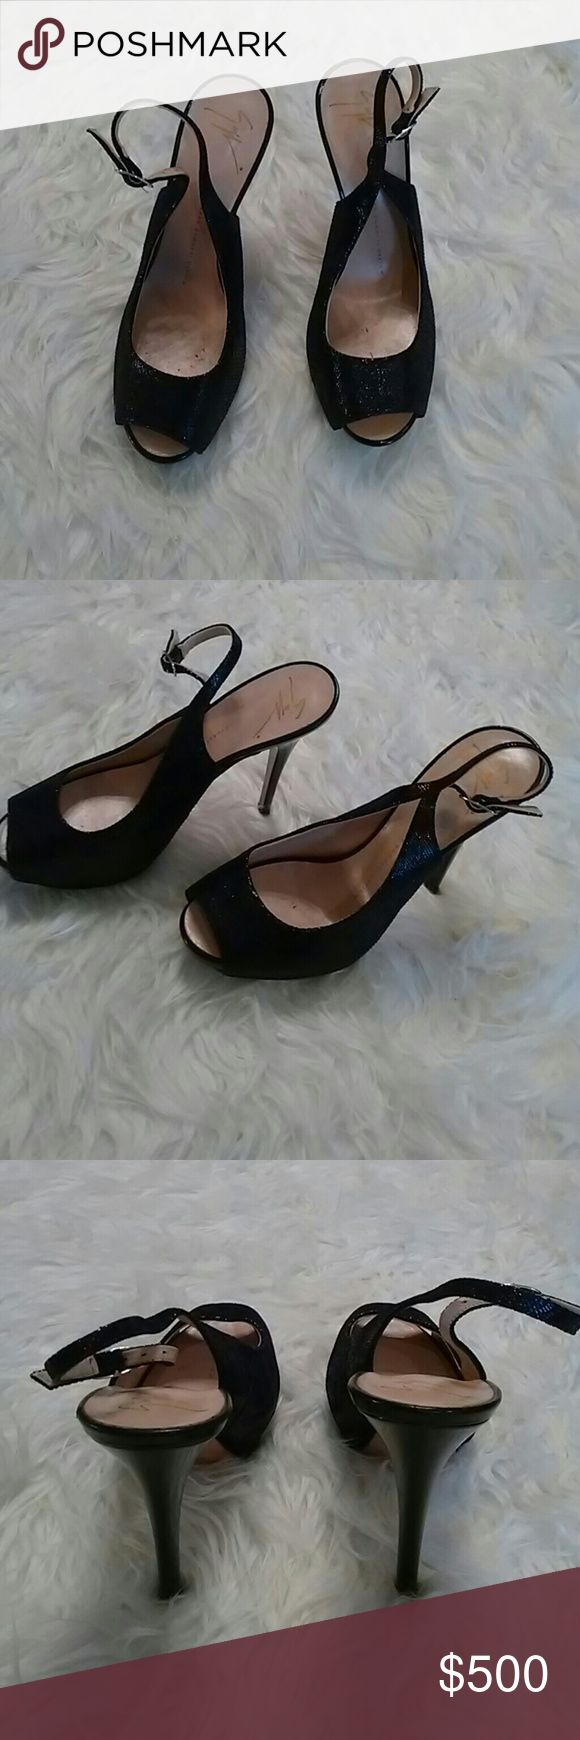 Giuseppe zanotti design Black heels, like new condition great for a night out Giuseppe Zanotti Shoes Heels